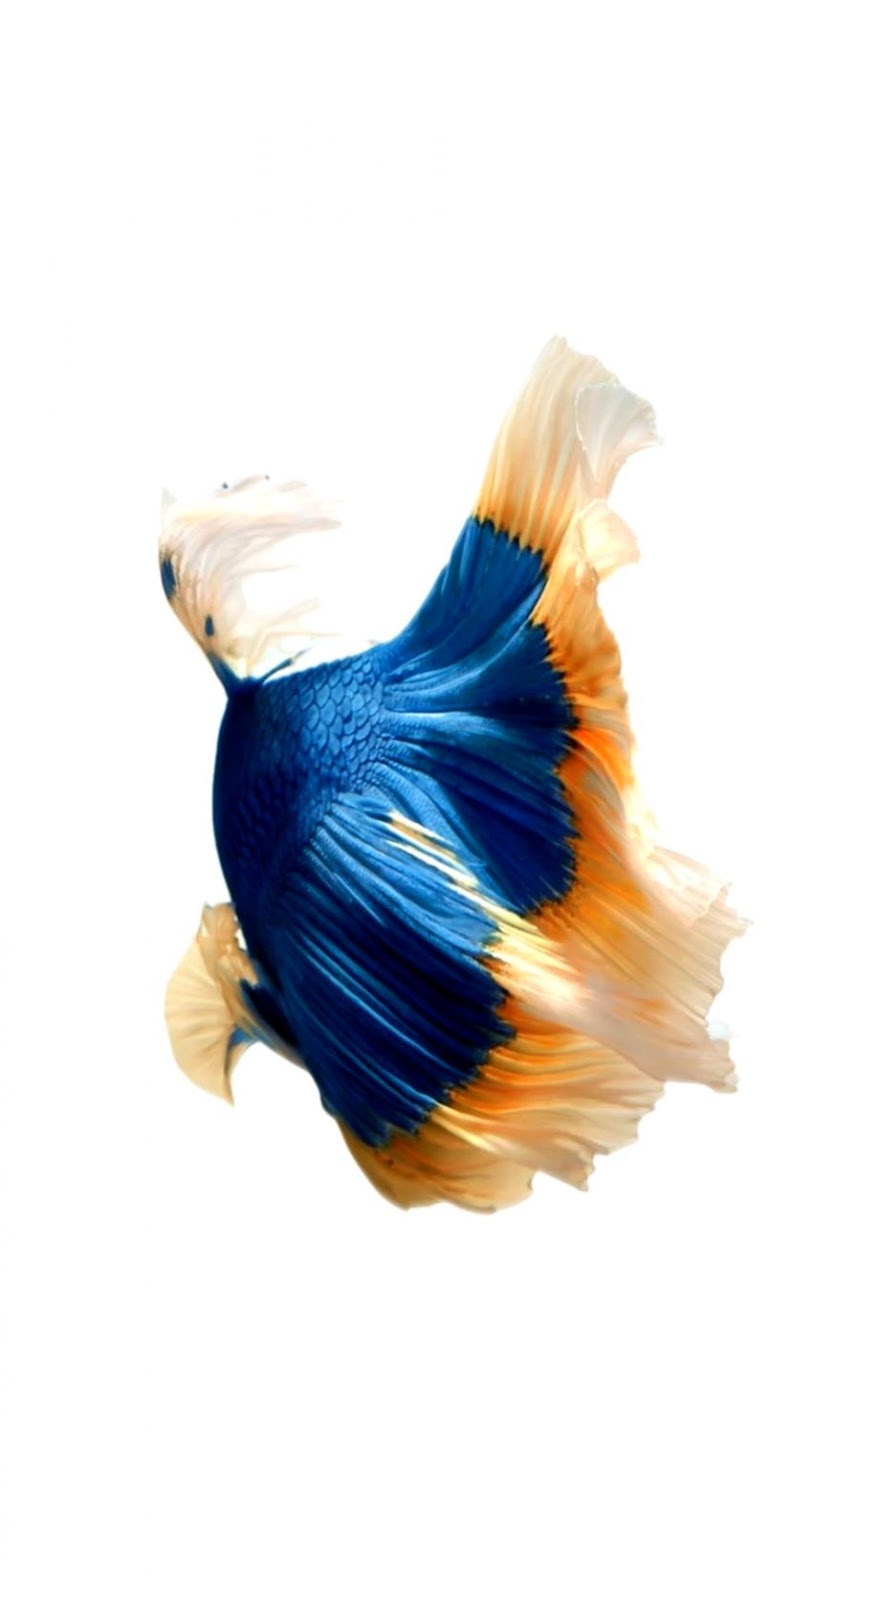 How To Get Apples Live Fish Wallpapers Back On Your Live Wallpaper Ios 10 880x1600 Wallpaper Teahub Io